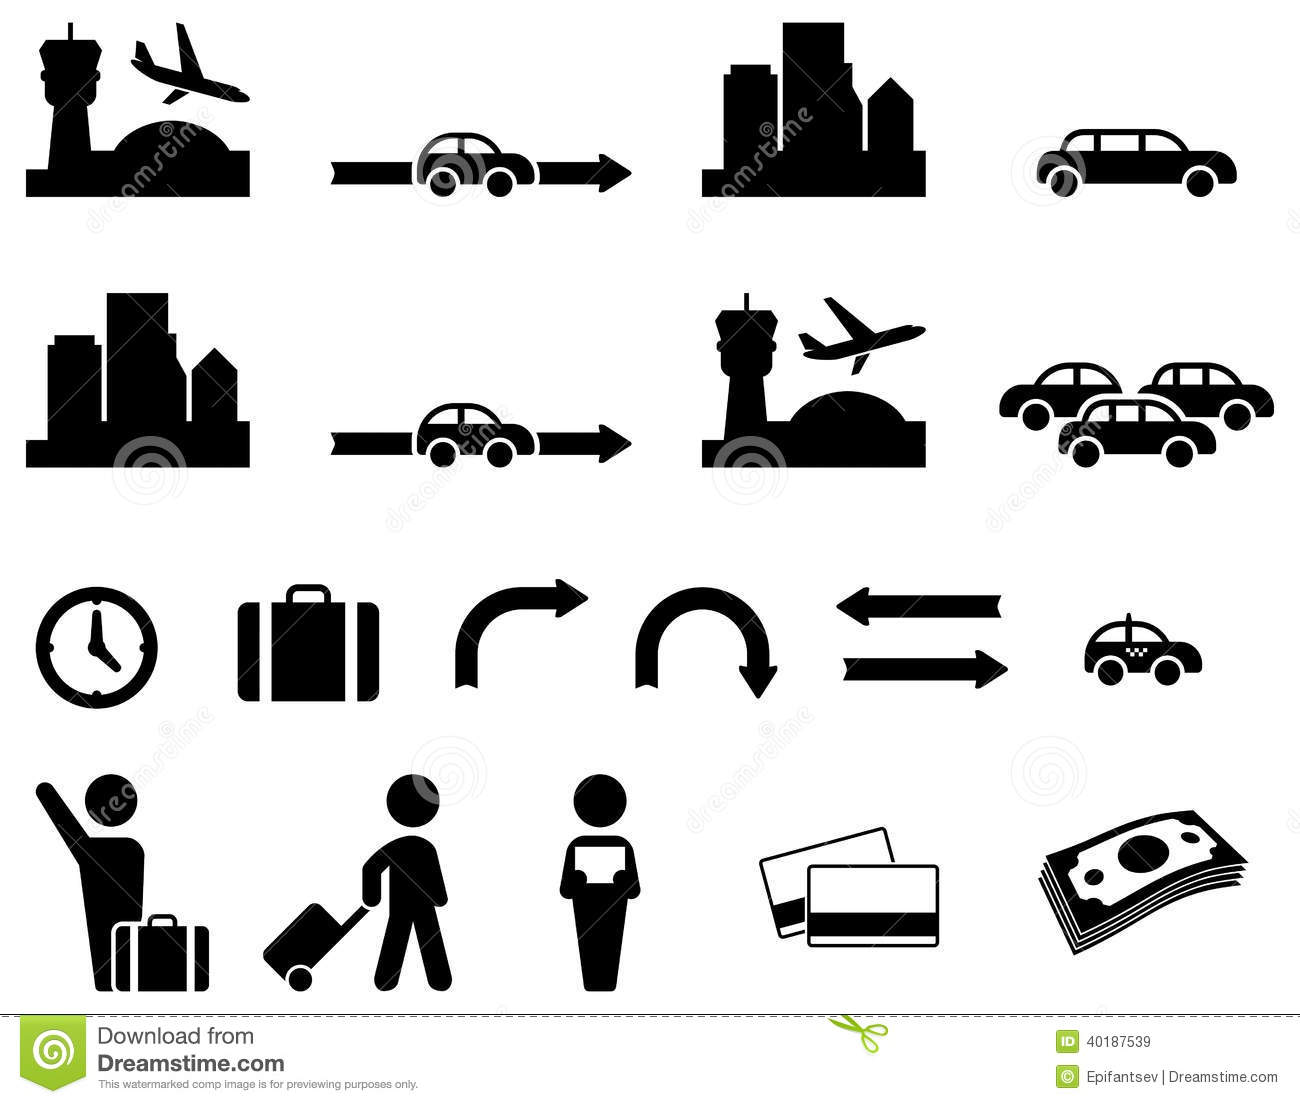 Airport transfer icon set stock vector. Image of land